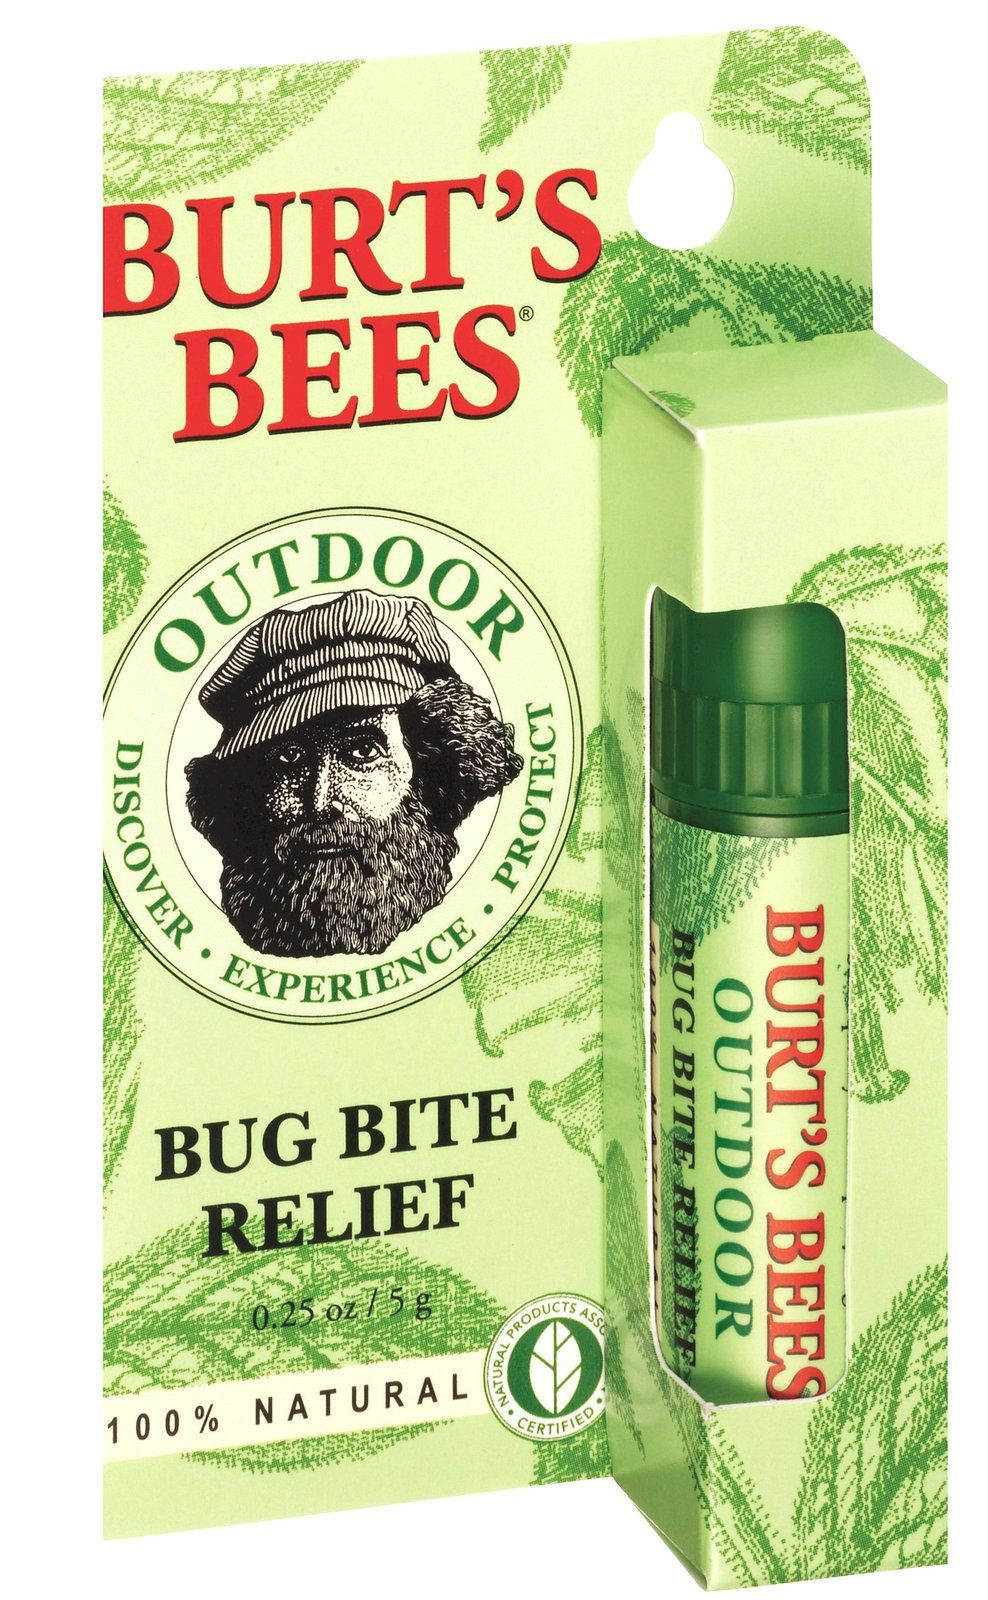 I swear by this stuff! I get eaten alive every year by